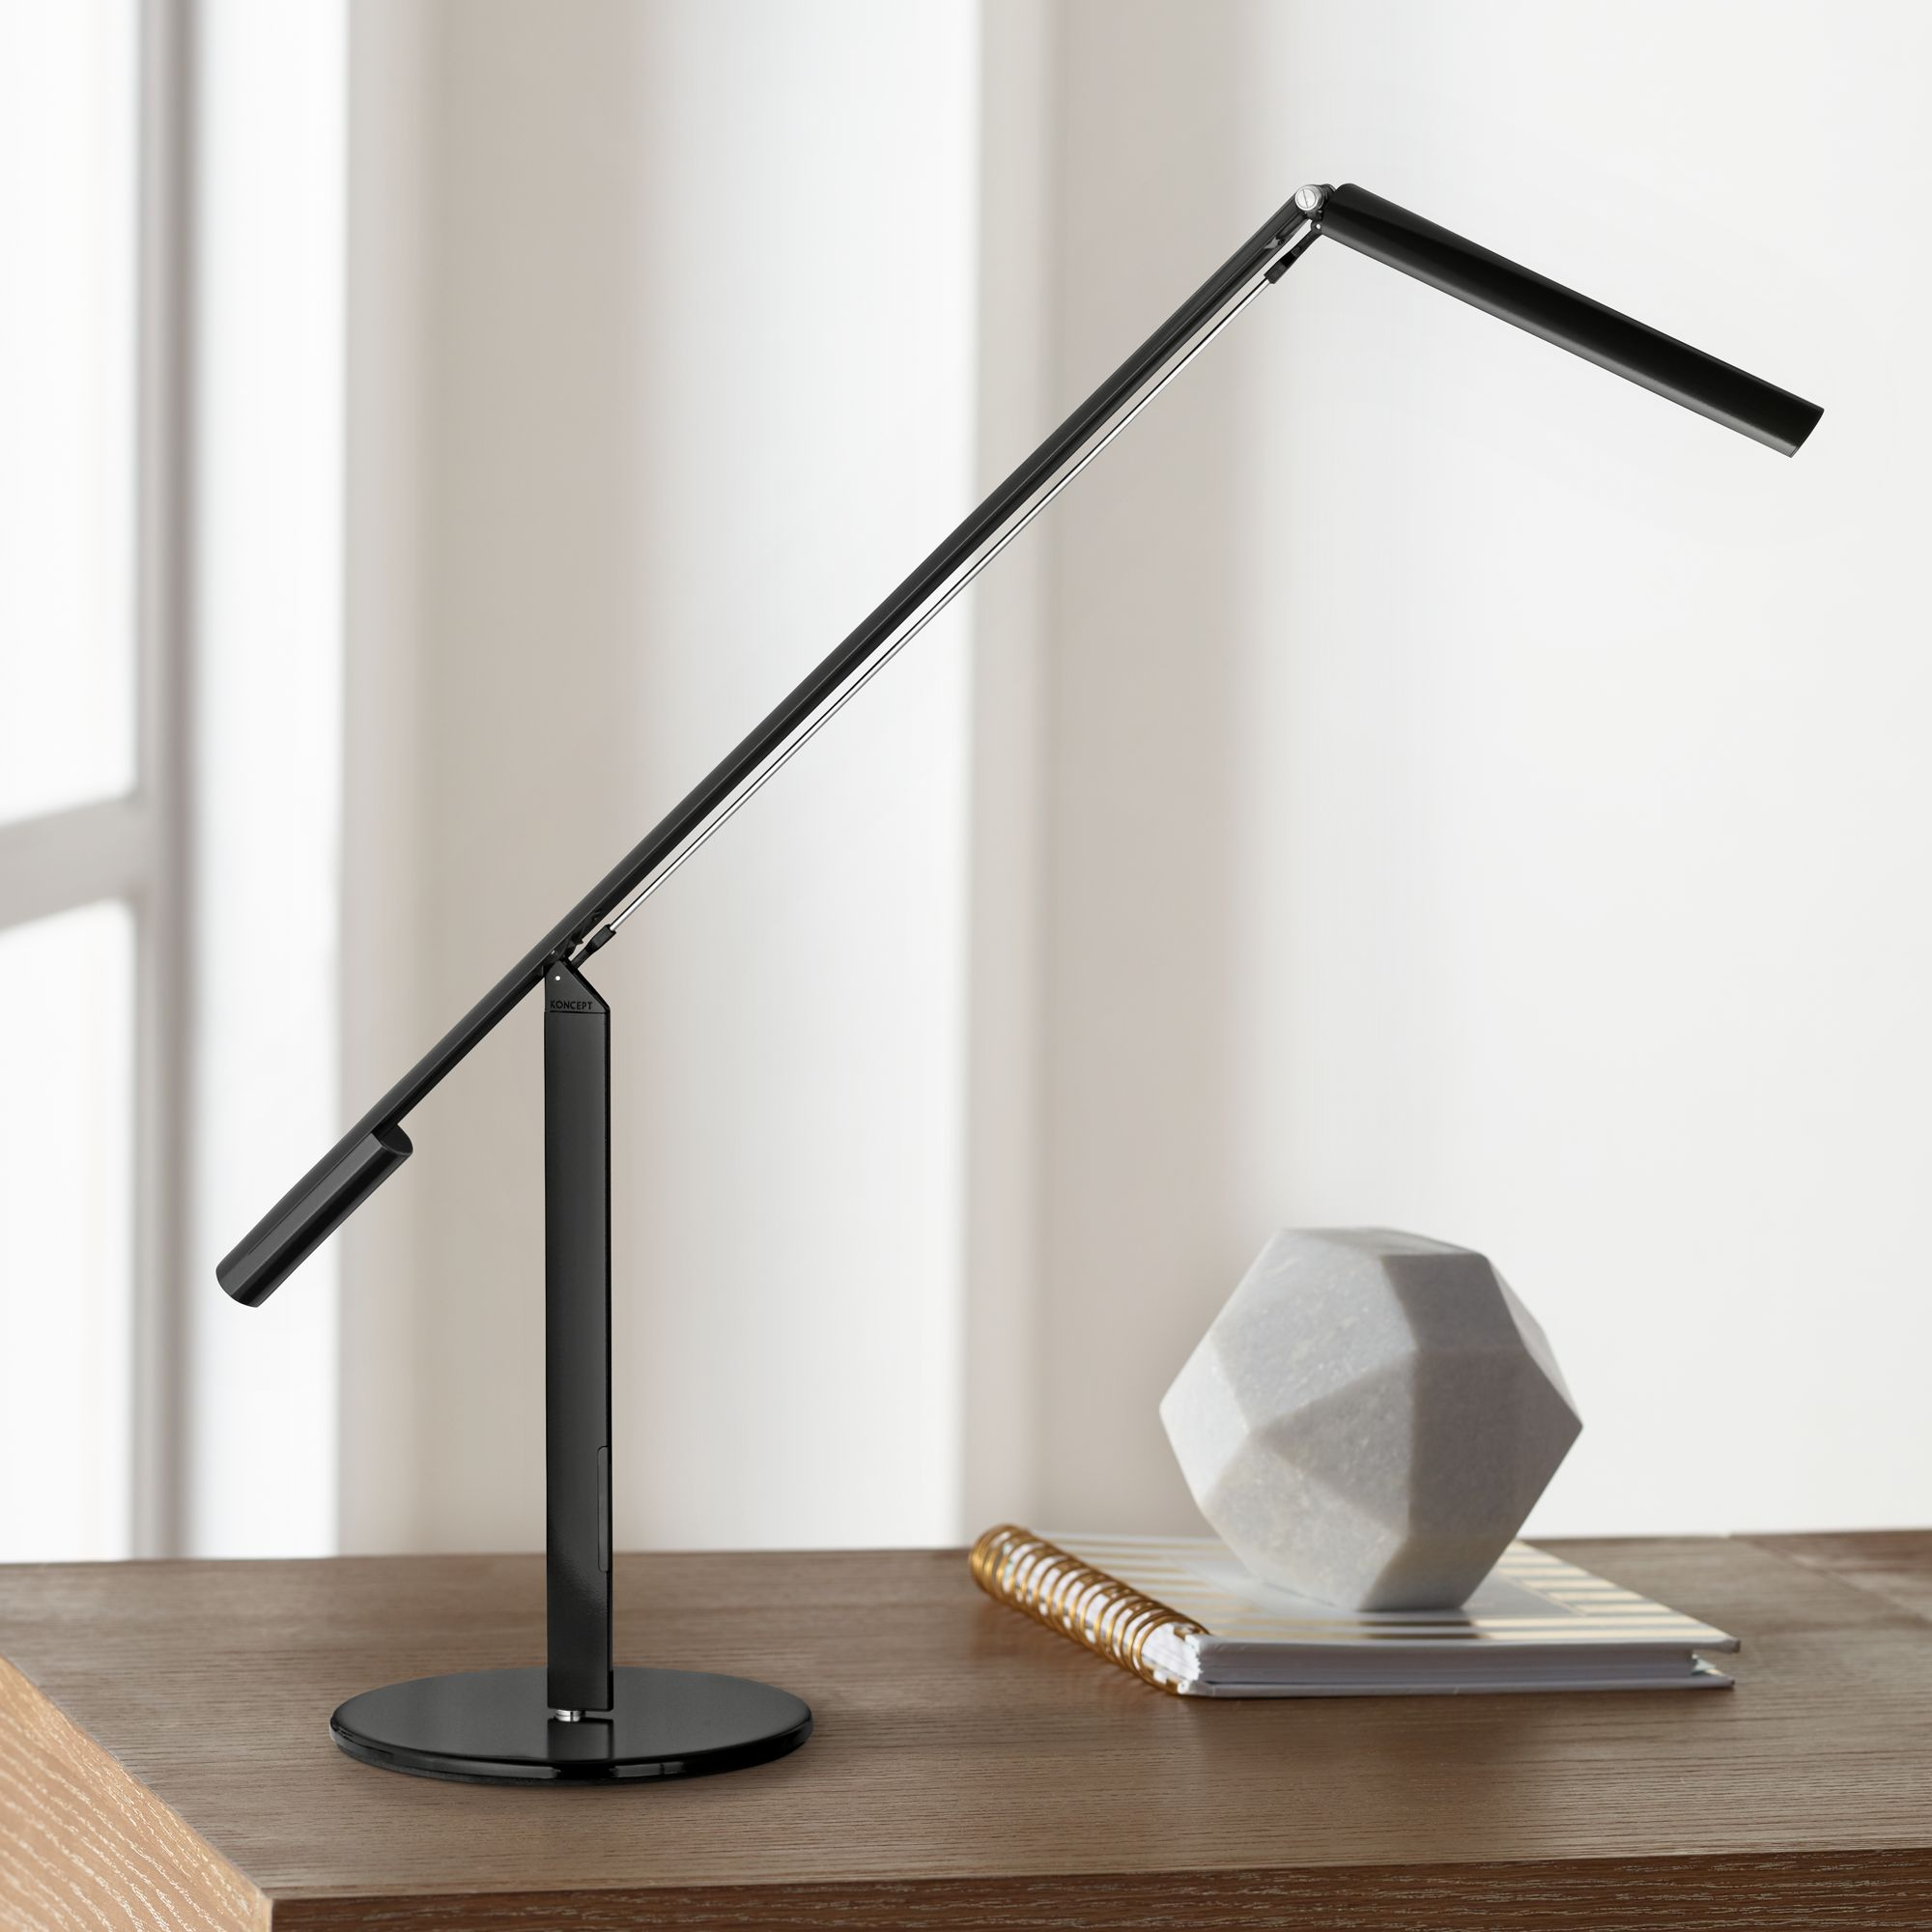 Charmant Gen 3 Equo Daylight LED Black Desk Lamp With Touch Dimmer